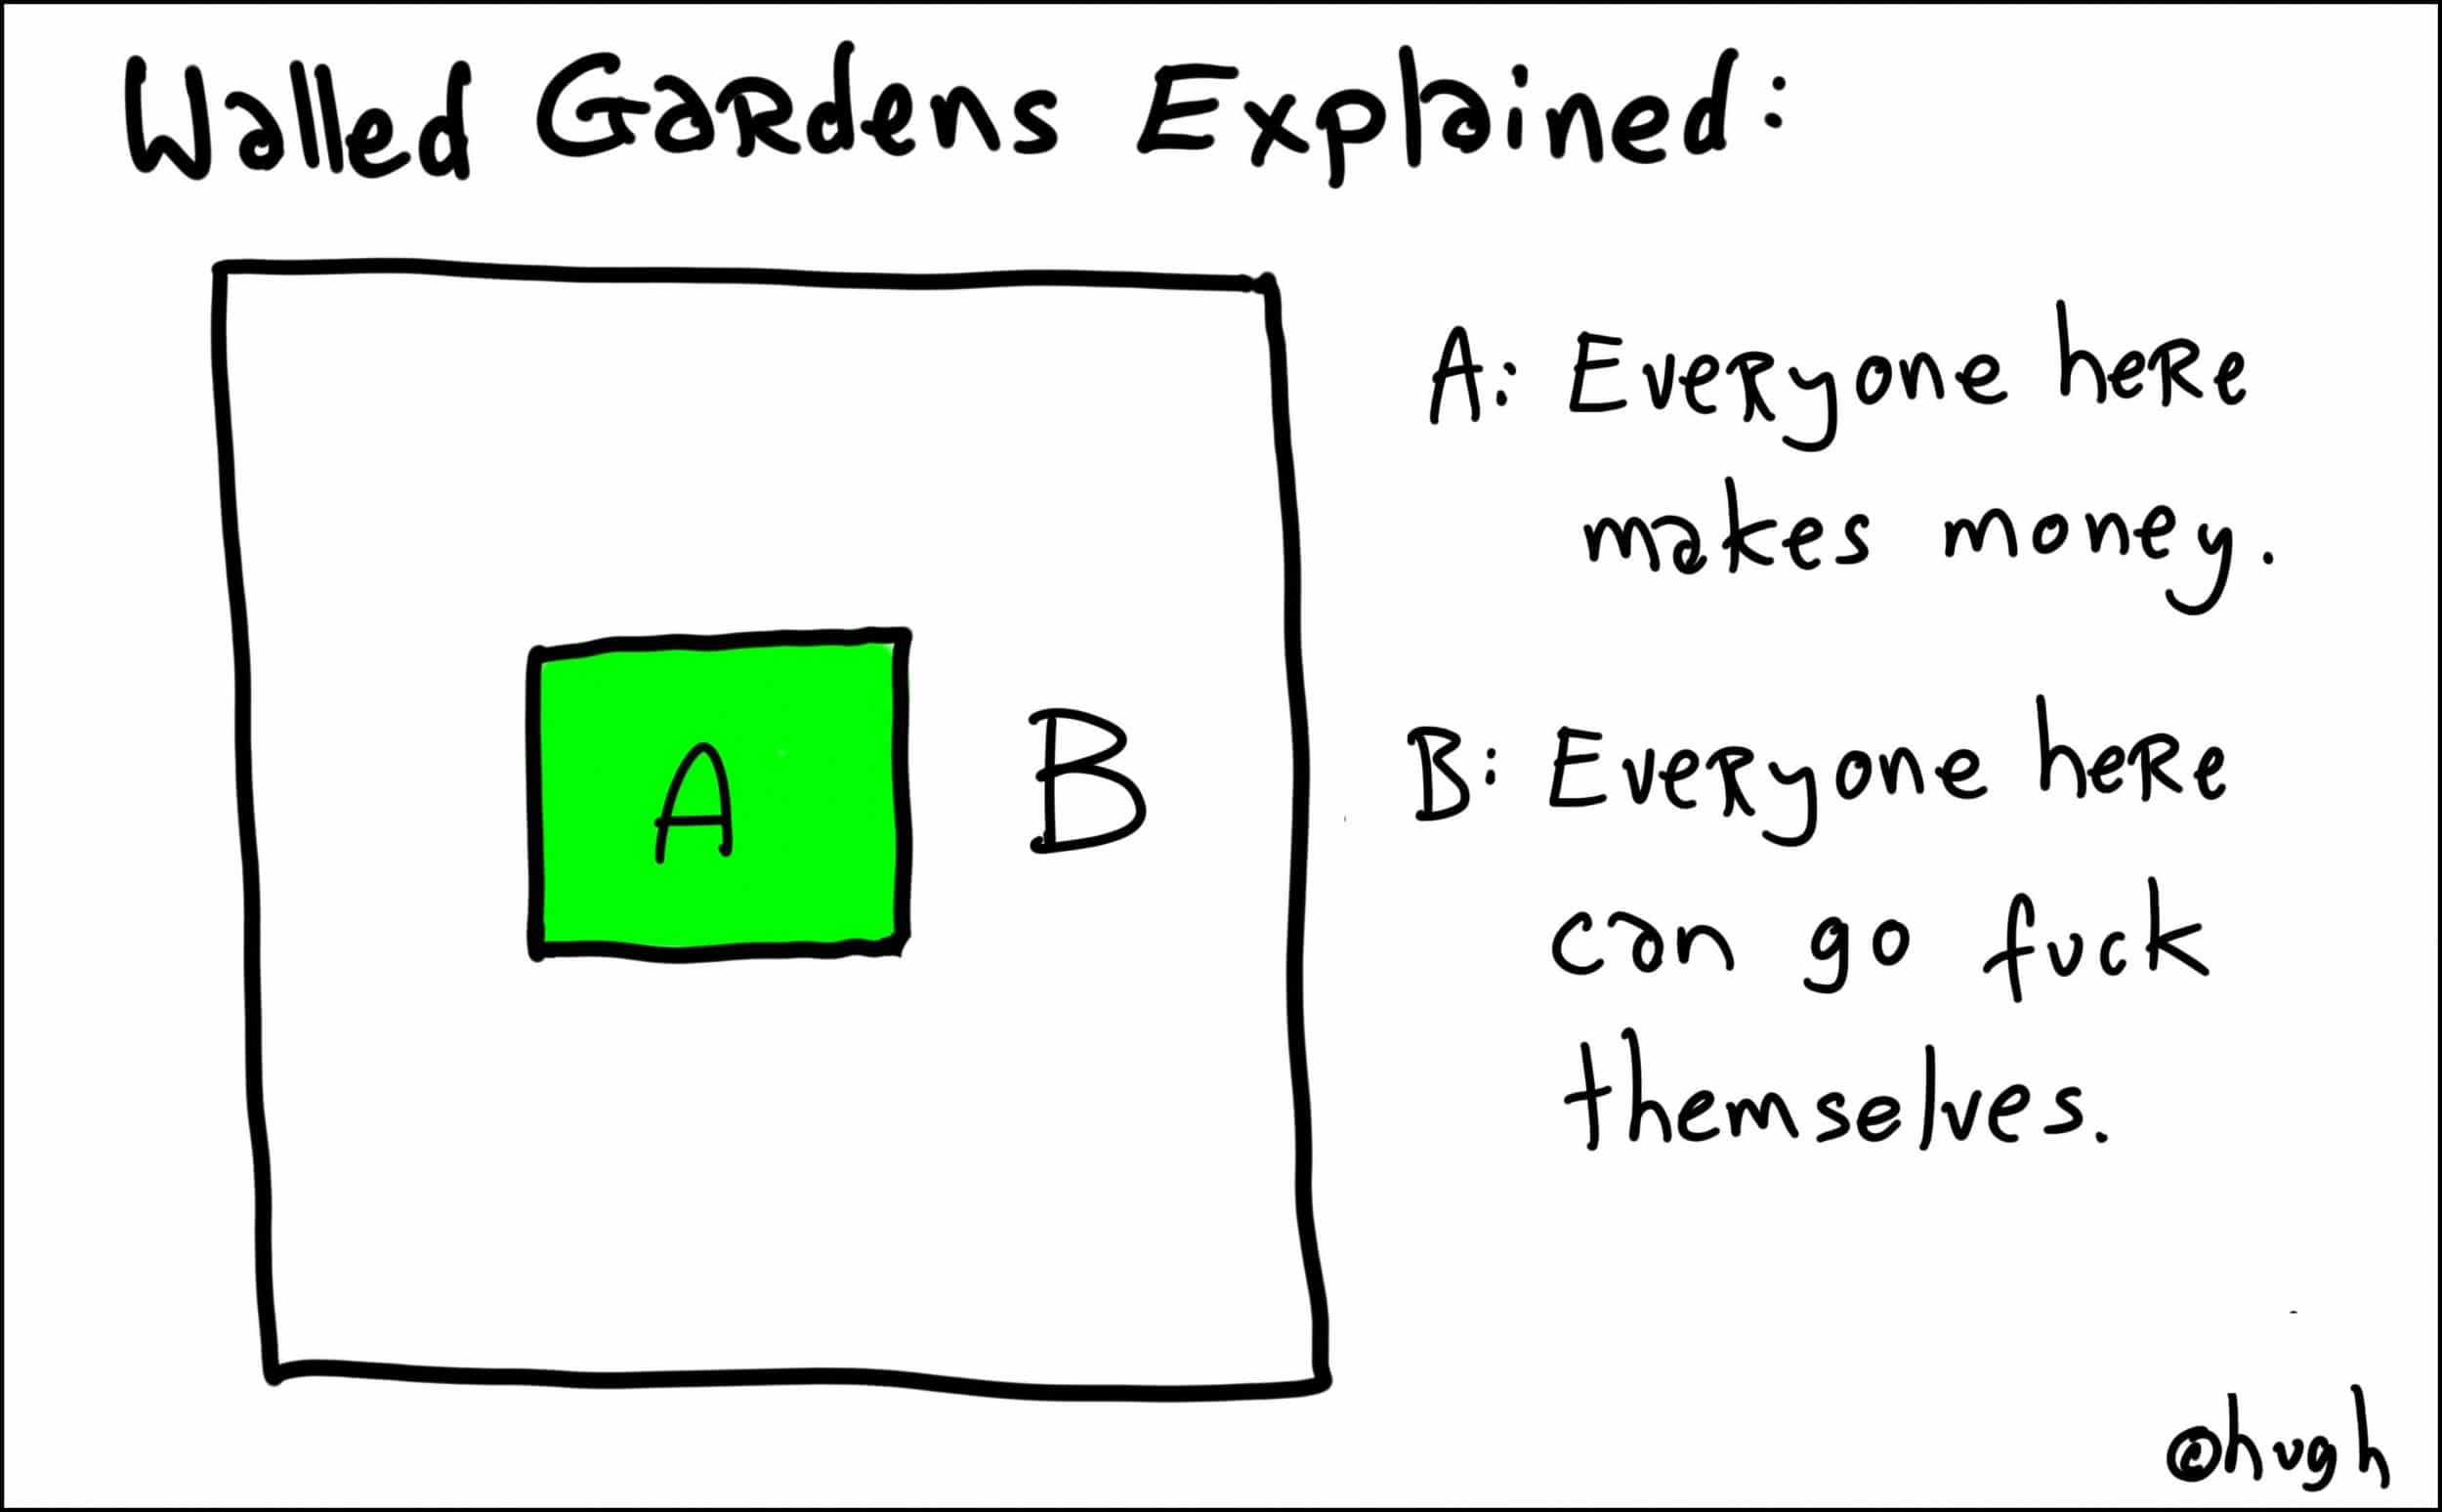 Walled Gardens Explained